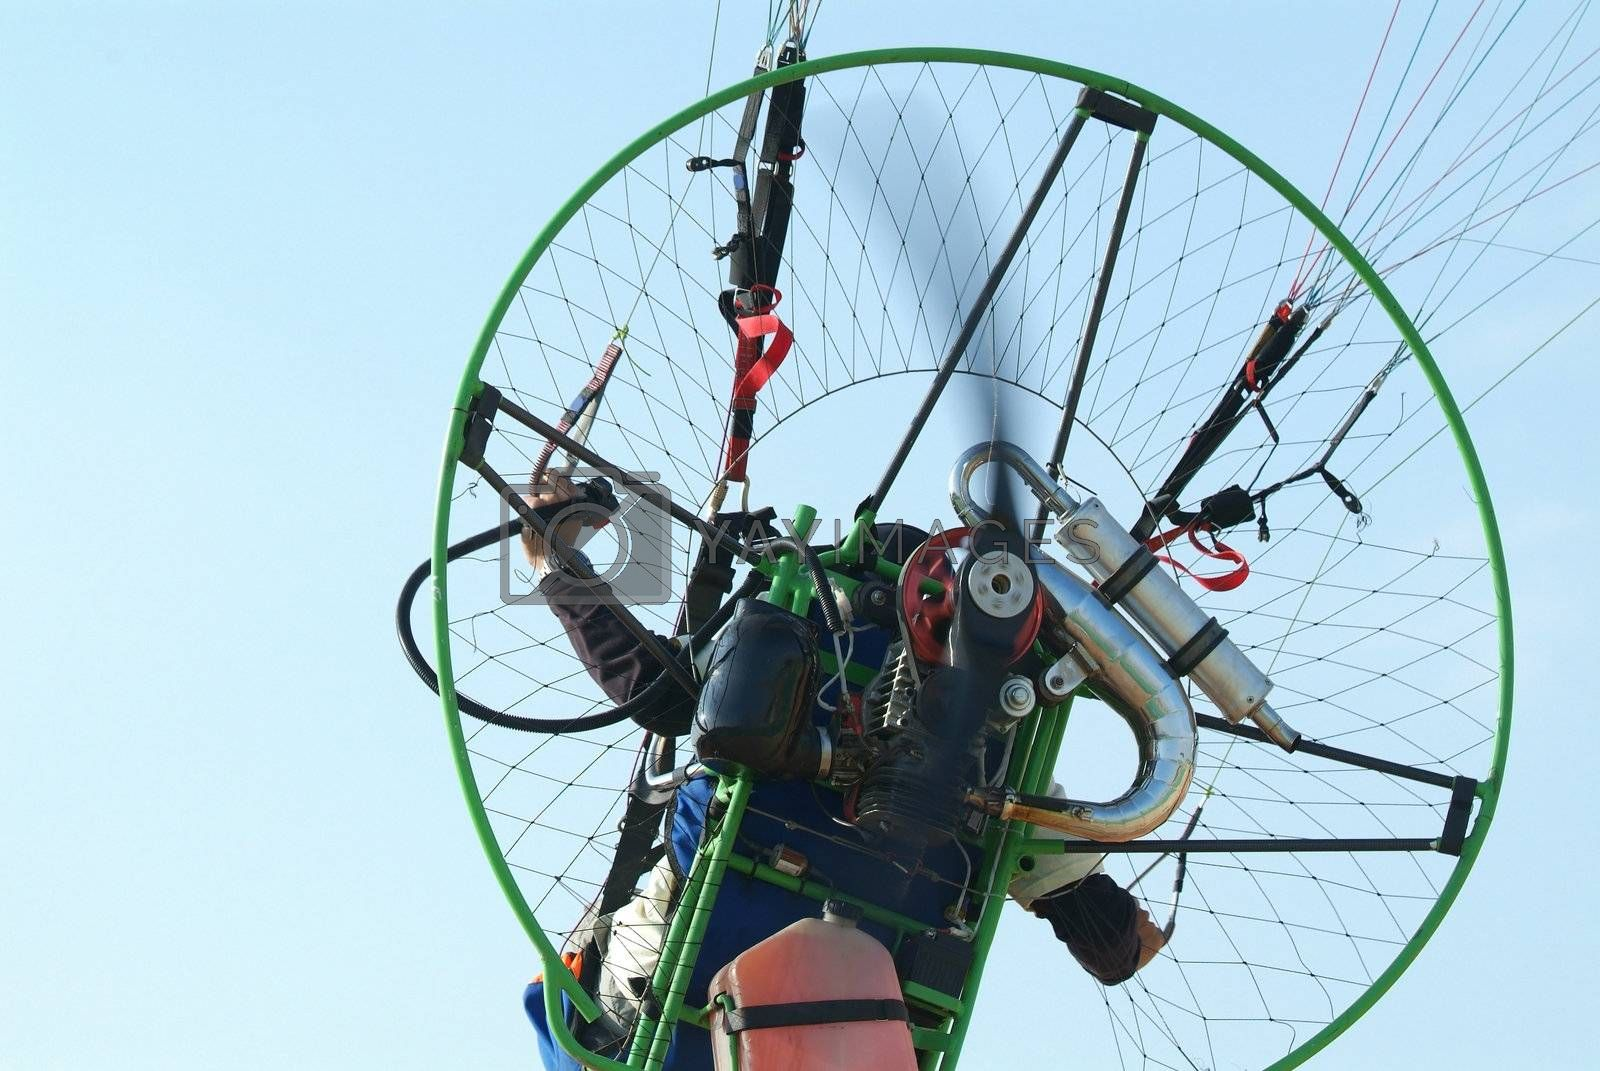 Flying paramotor by epixx